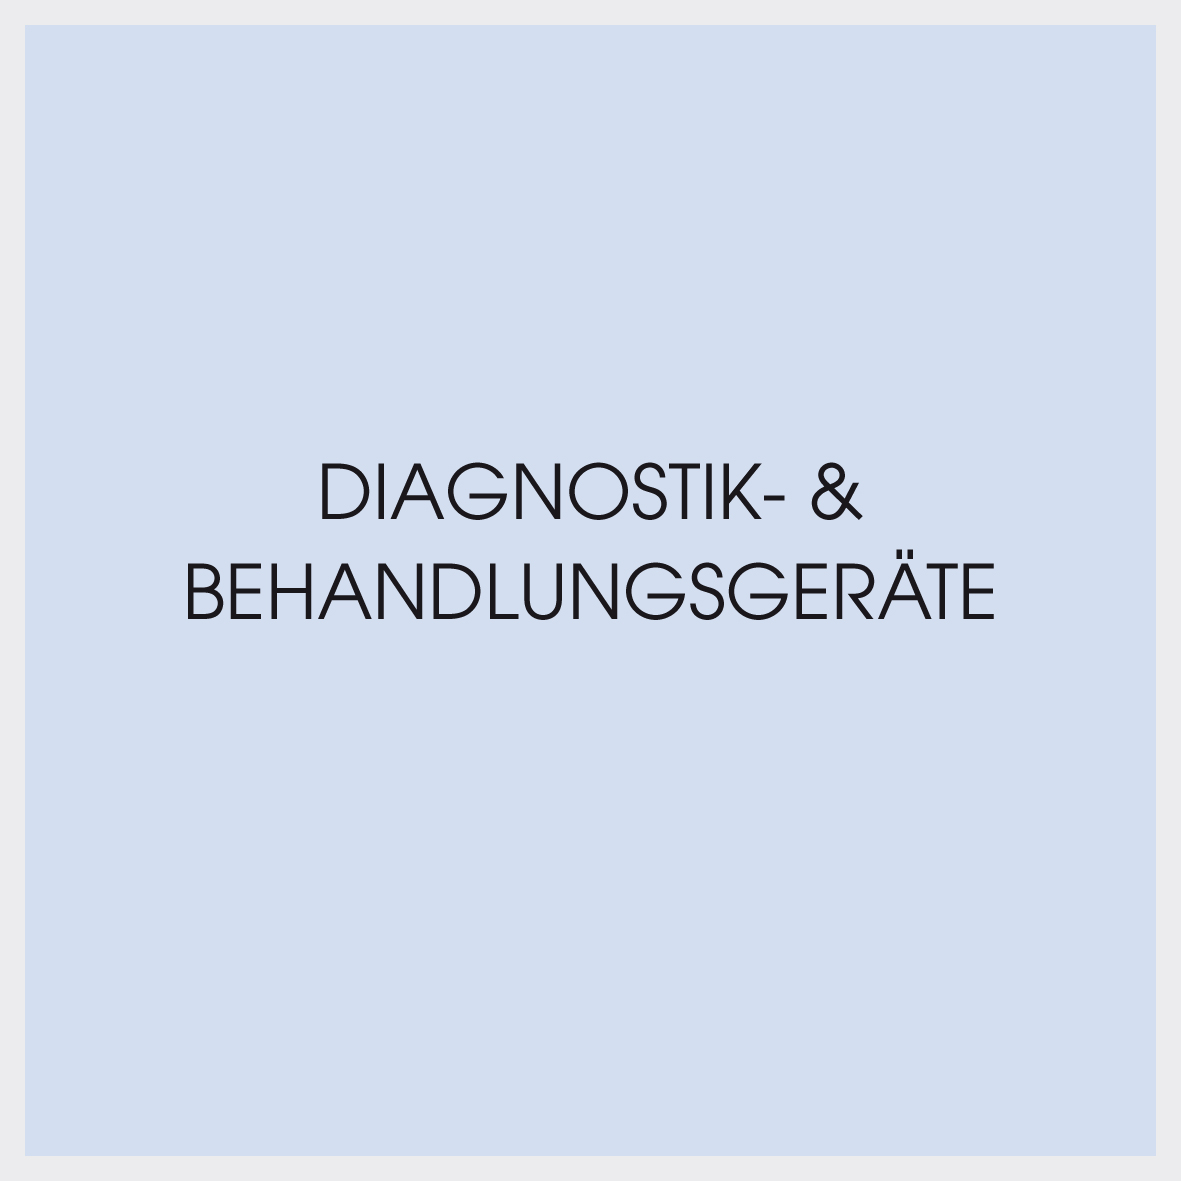 Diagnostik- & BehandlungsgerŠte.indd